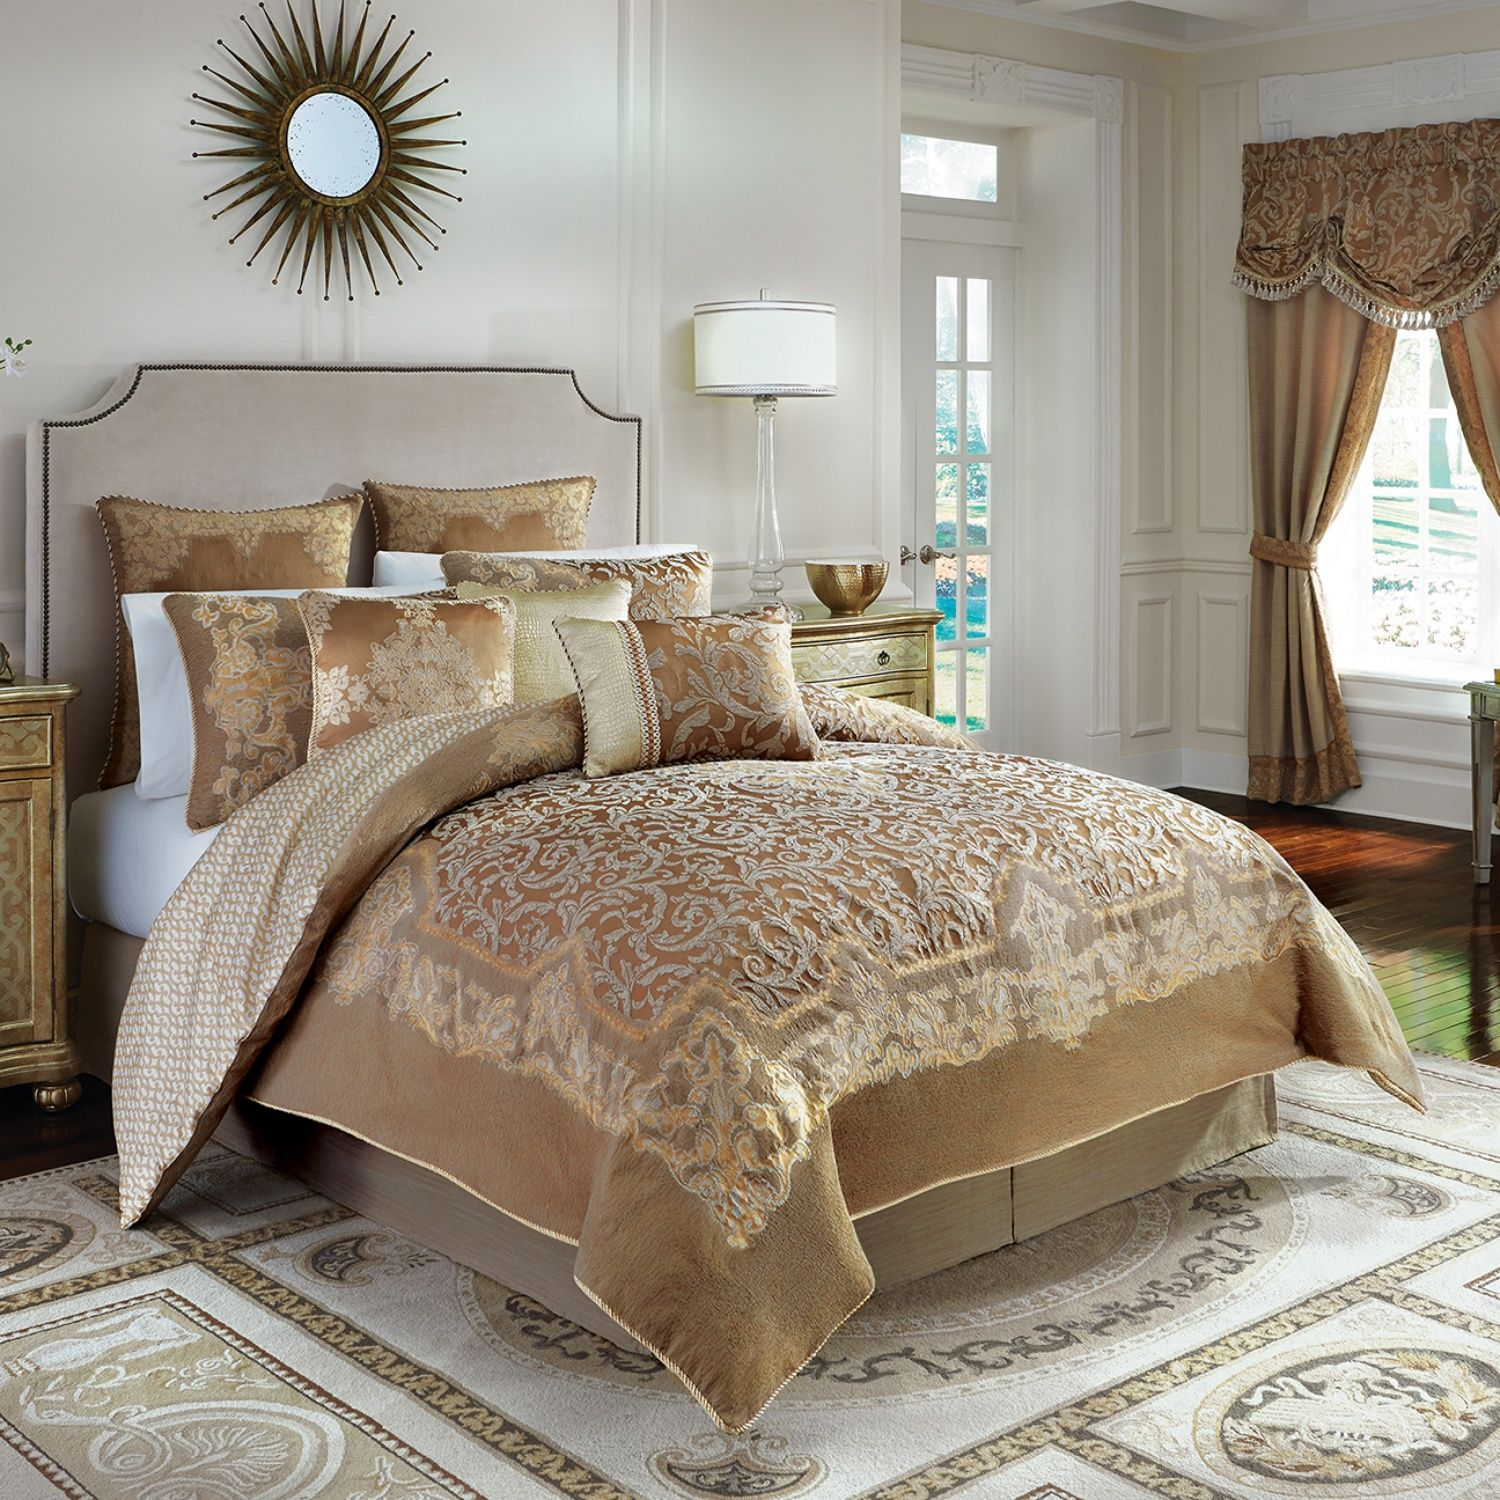 bath sets black cal furniture and bedding comforters info red king cream s gold bedspreads marble white beyond set queen twin comforter comexchange